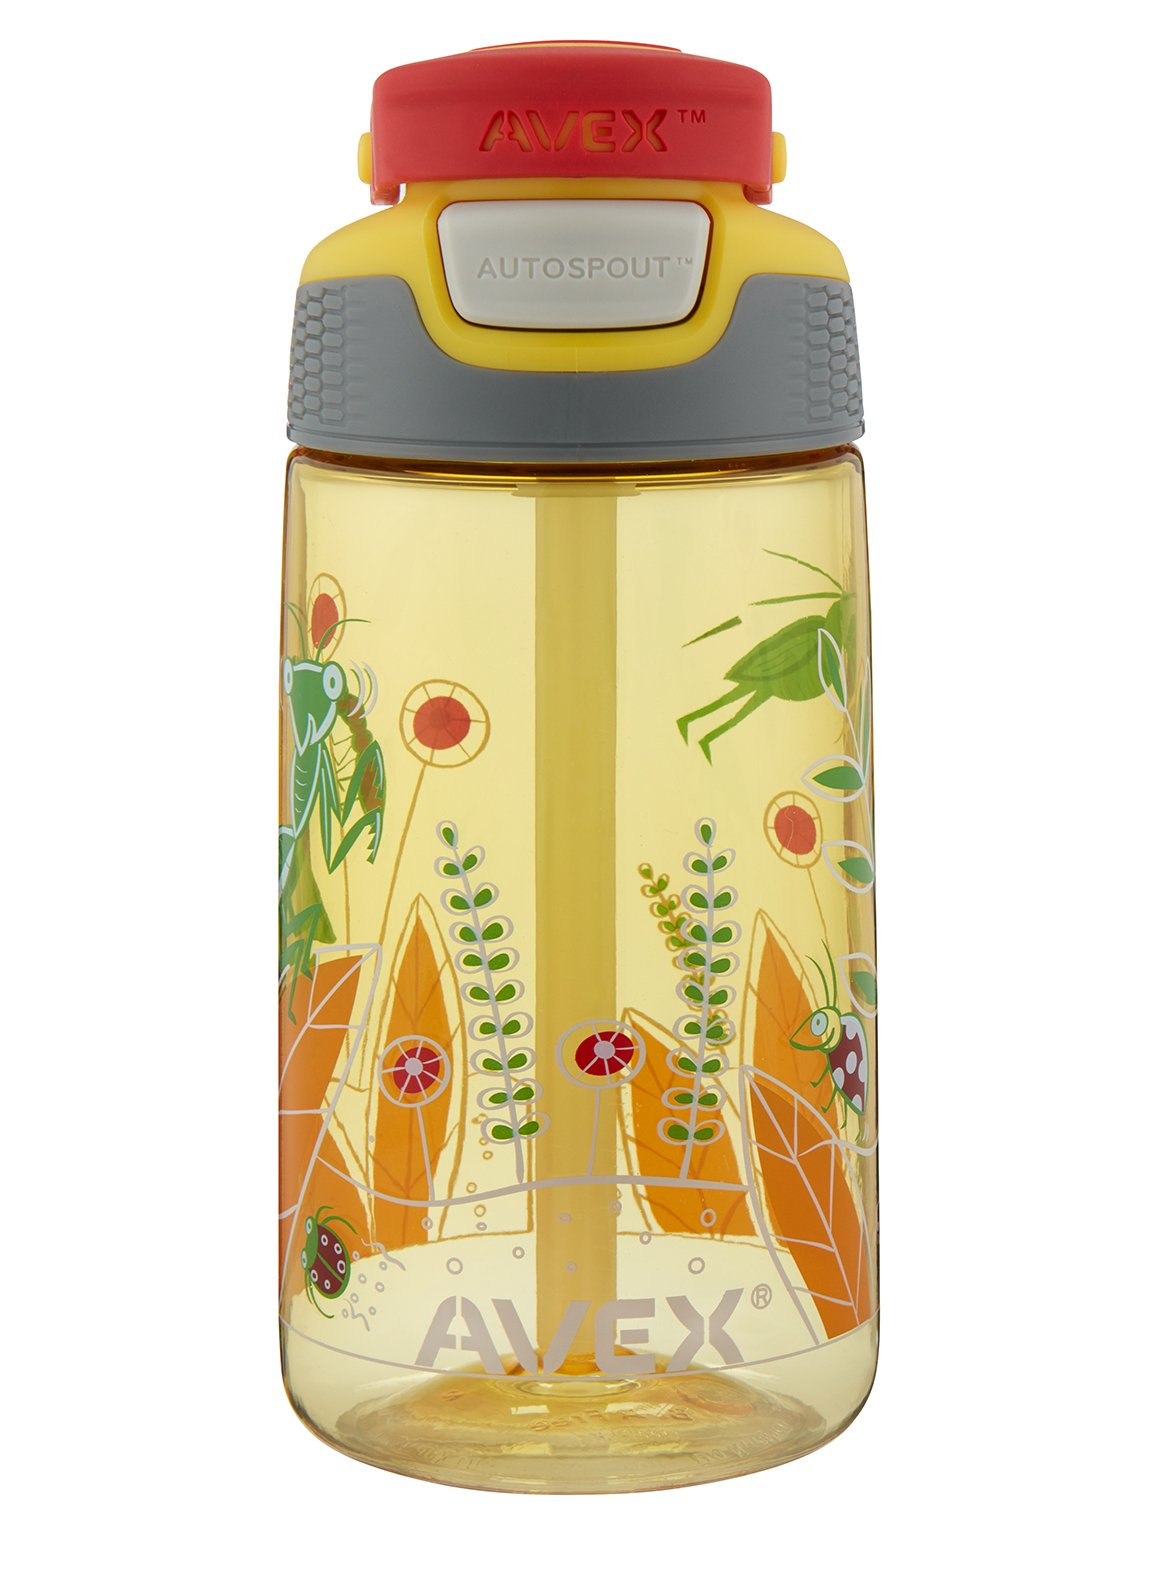 Avex Kids Freestyle Bugs Autospout Water Bottle, Yellow, 16 oz